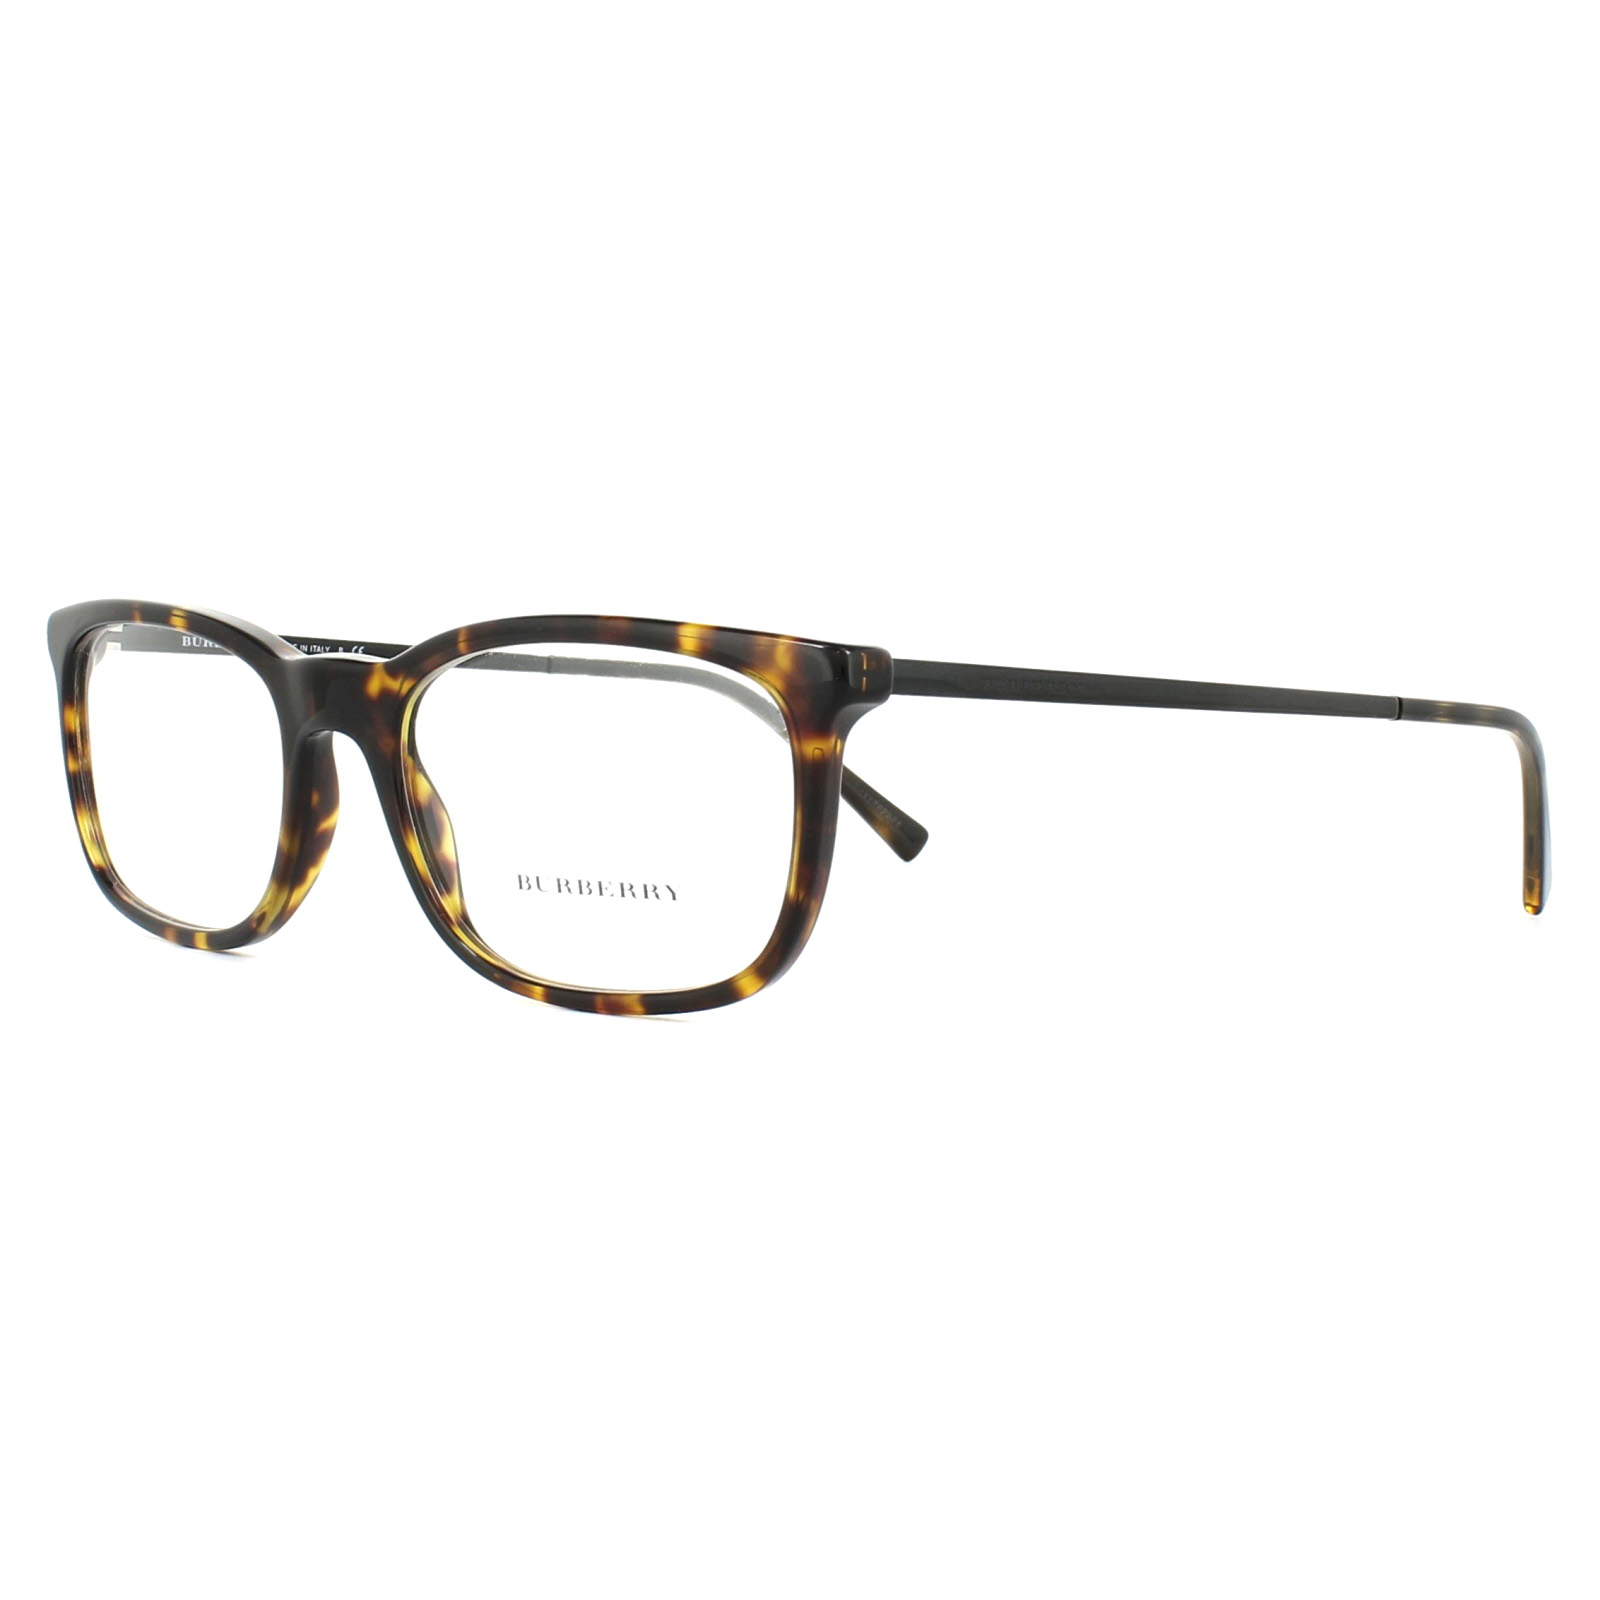 d1179efd0514 Sentinel Burberry Glasses Frames BE2267 3002 Dark Havana 53mm Mens